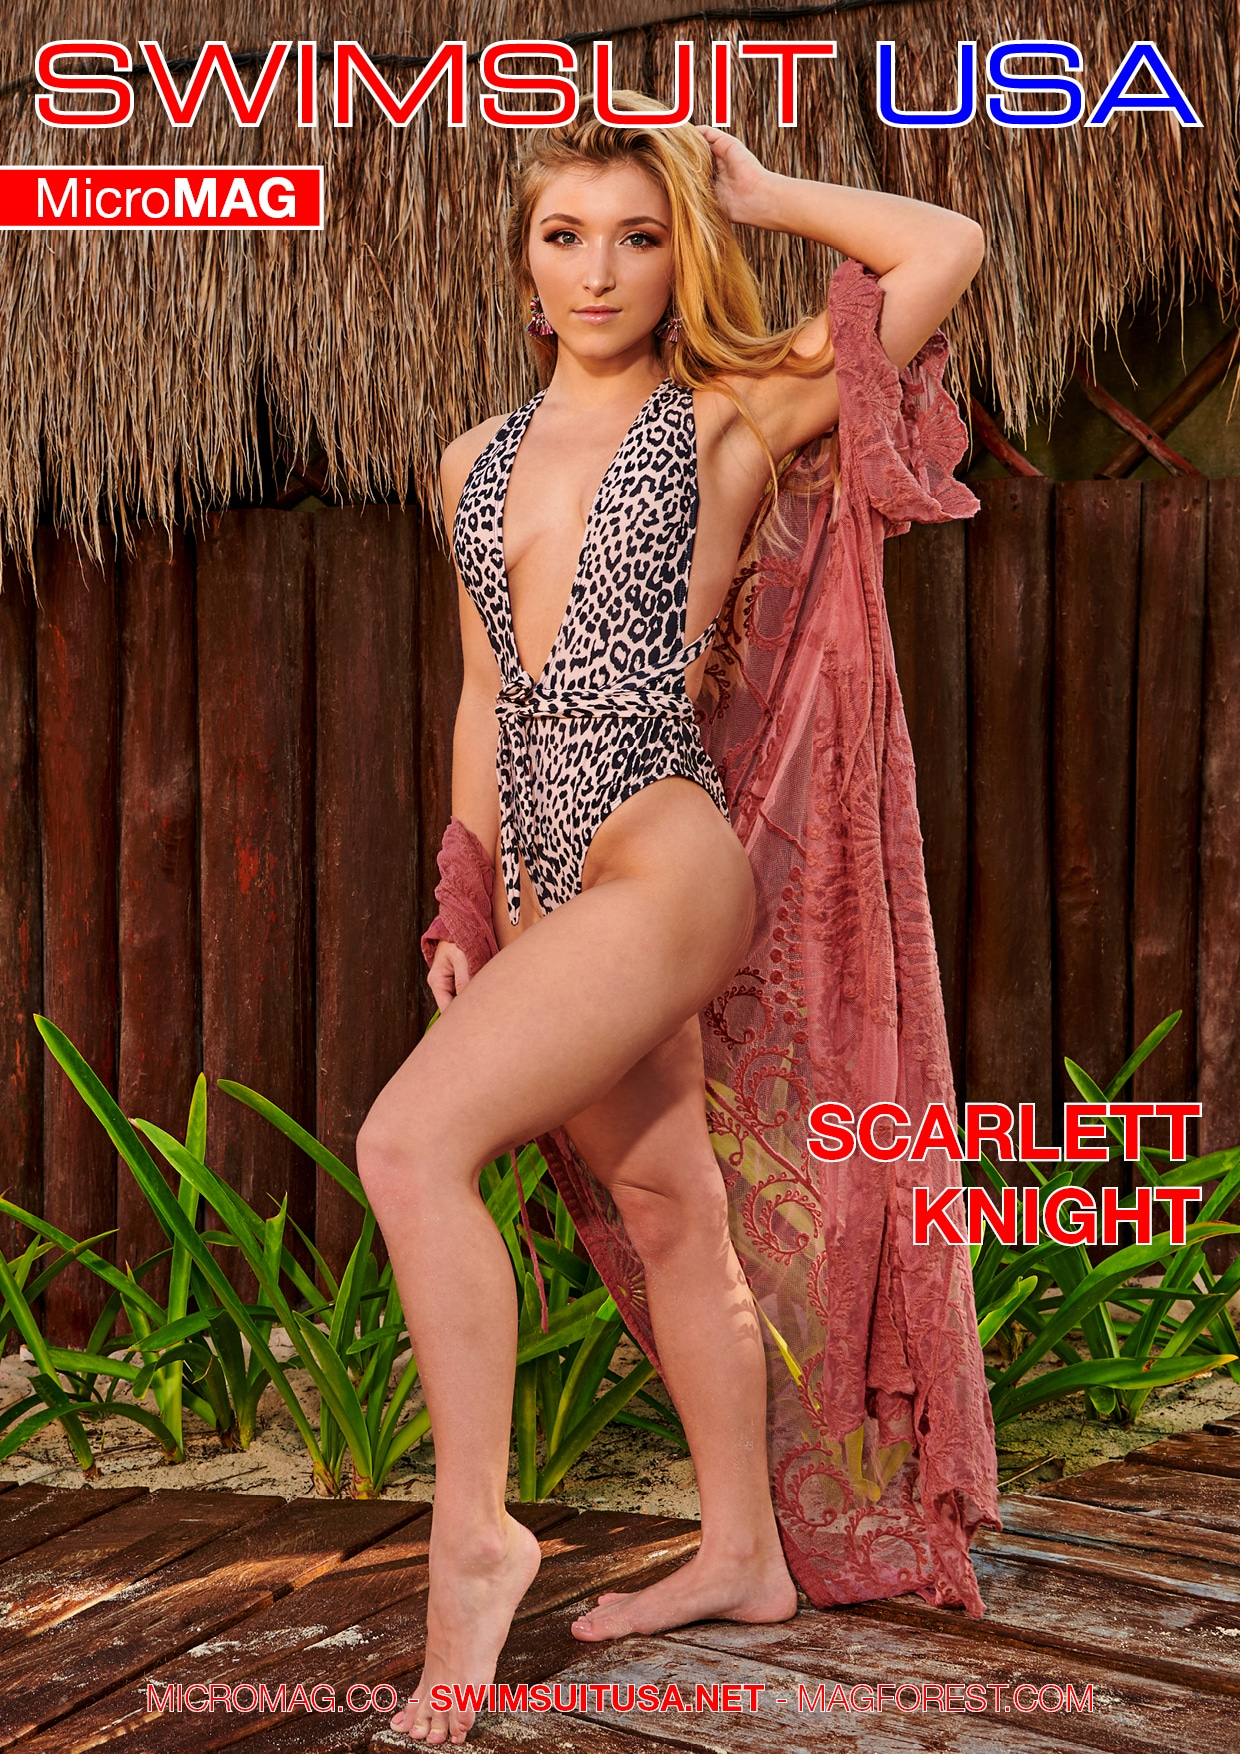 Swimsuit USA MicroMAG - Scarlett Knight - Issue 2 2